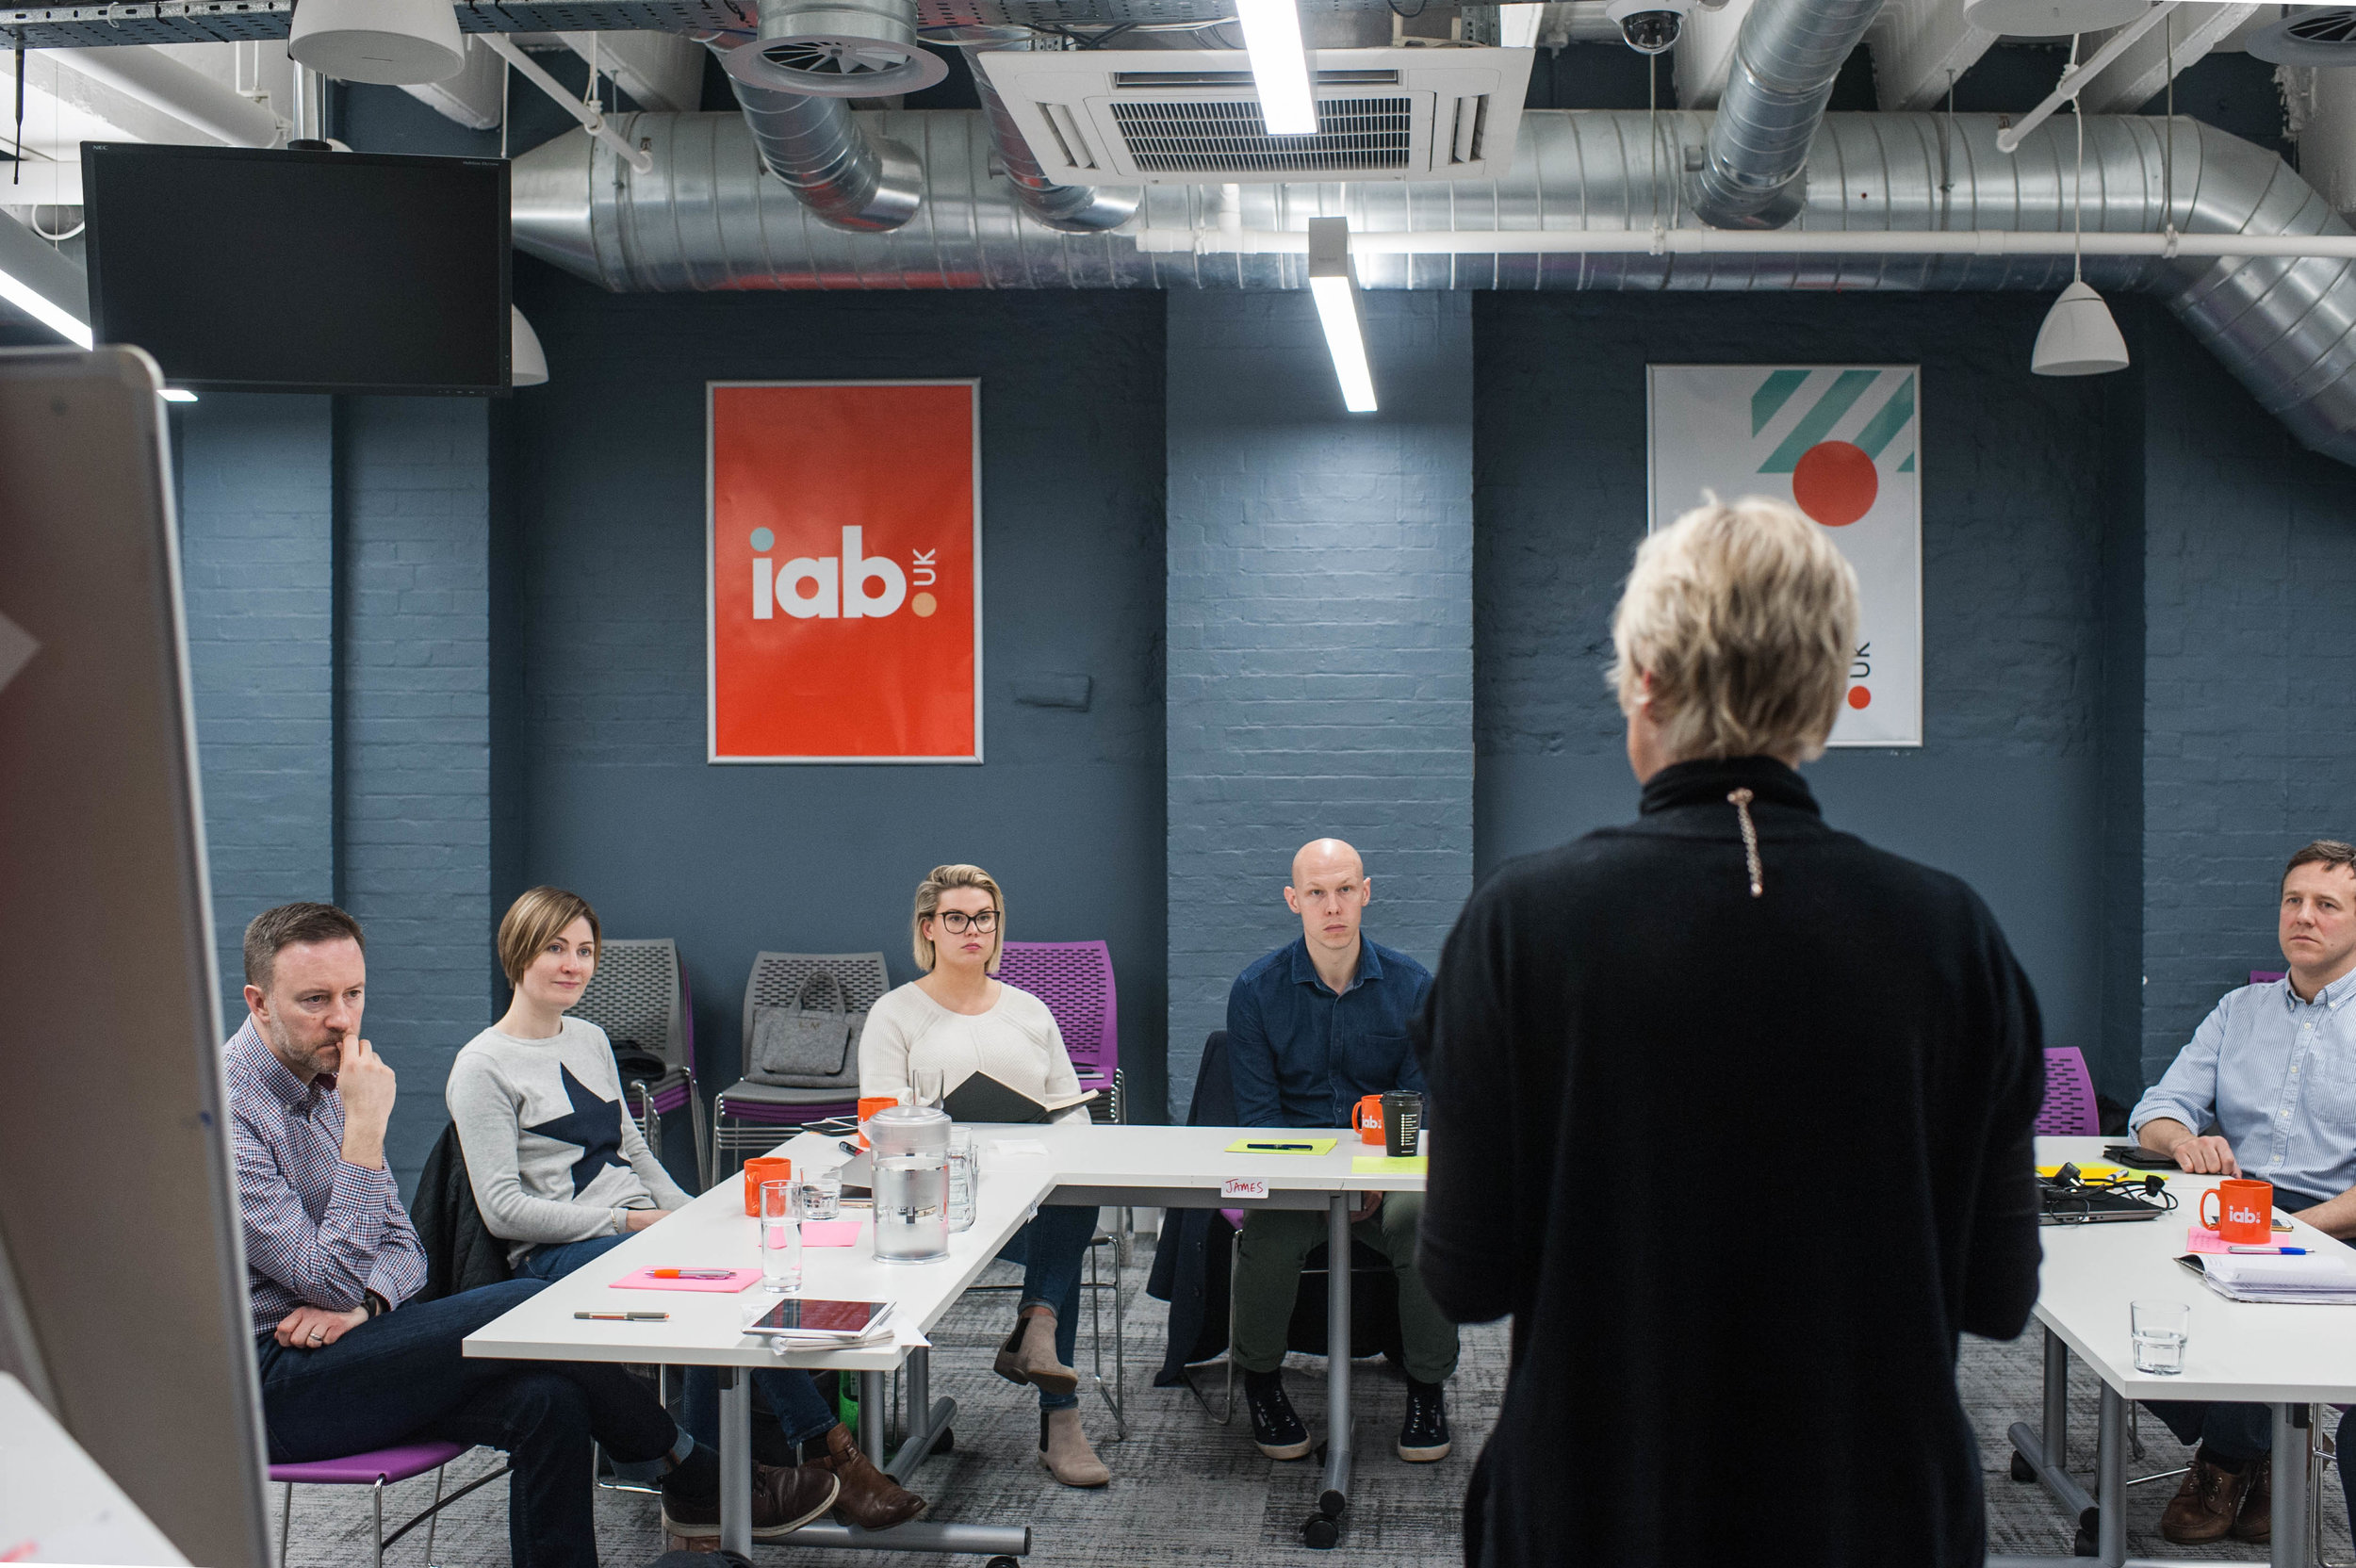 IAB Uk_Incidental Shots_SM (162 of 312).jpg